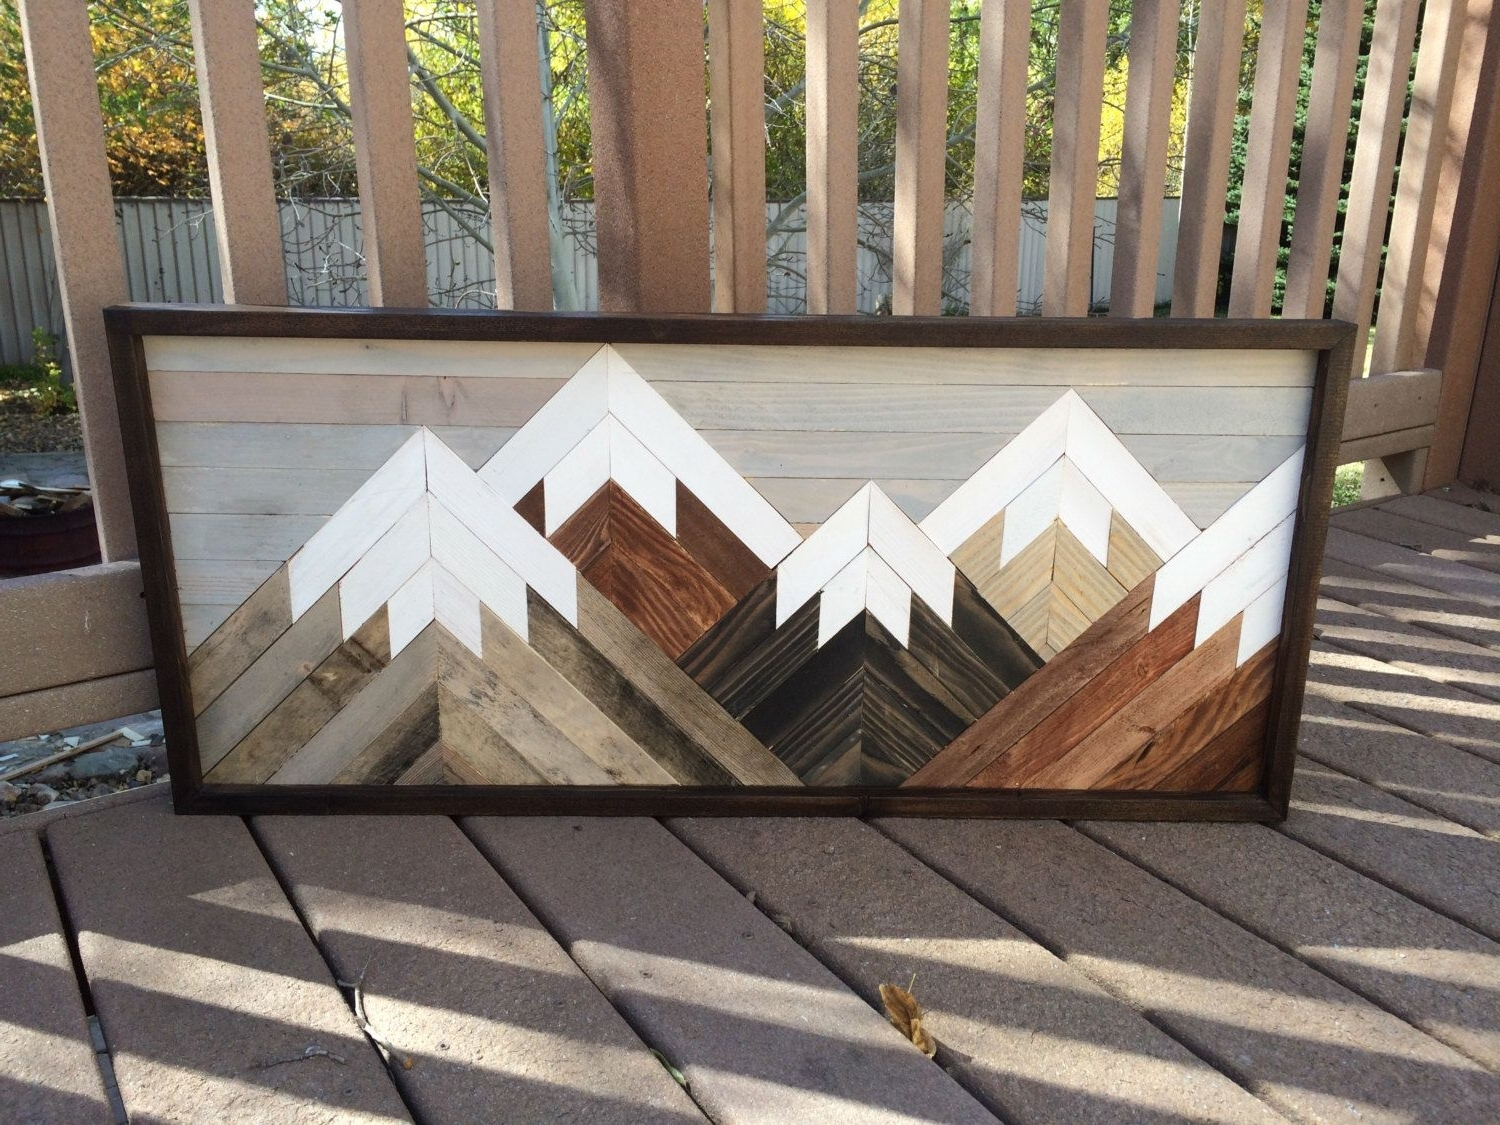 2017 Stained Wood Wall Art Intended For Reclaimed Wood Wall Art Mountain Scene, Mantel Art, Cabin Decor (View 15 of 15)